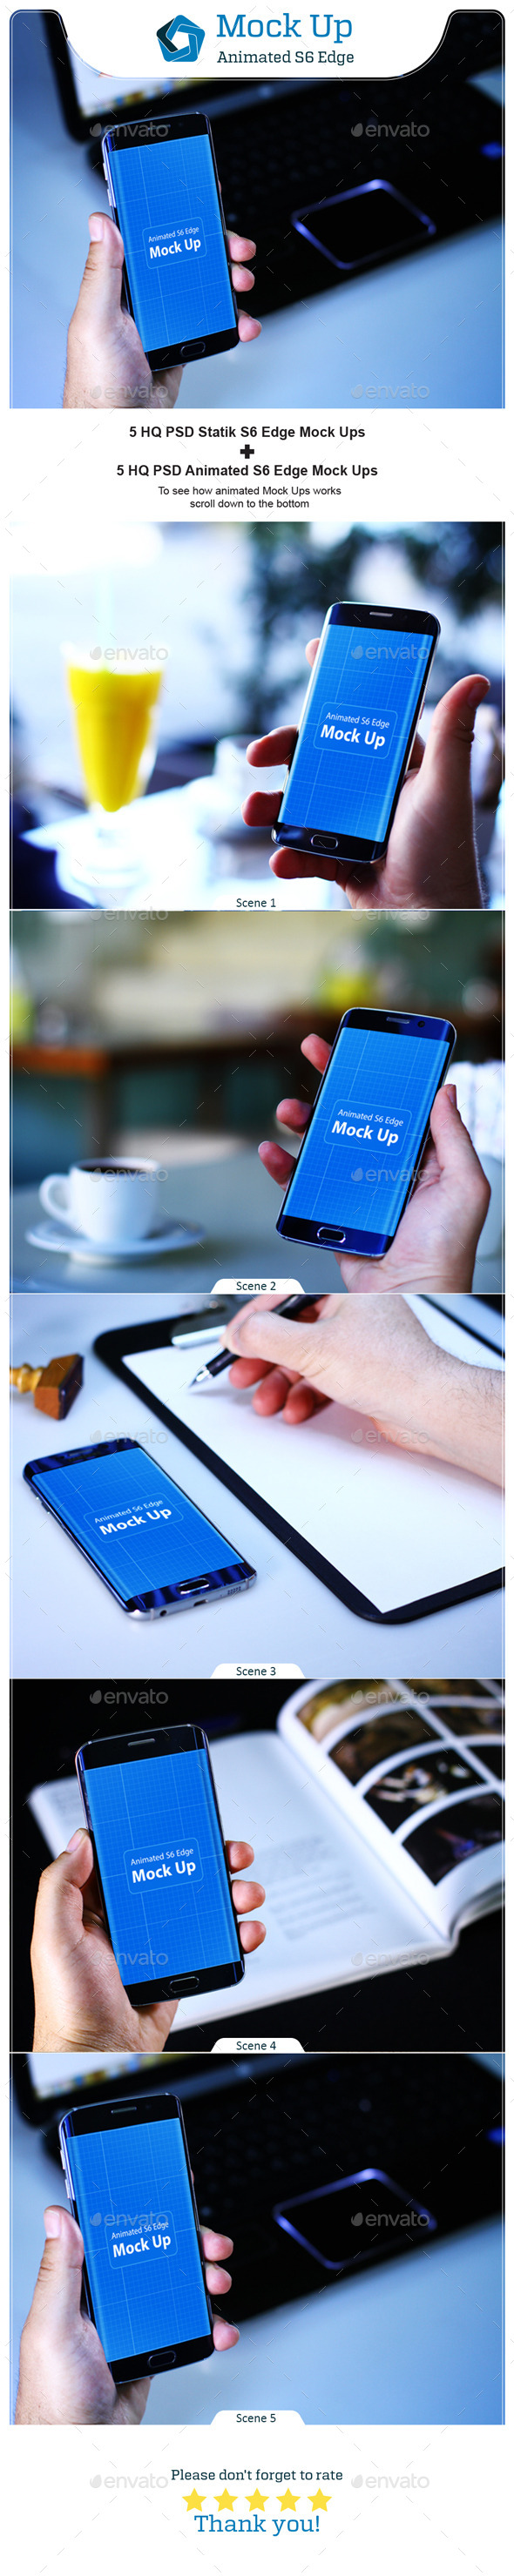 GraphicRiver Animated S6 Edge MockUp V.1 11410735